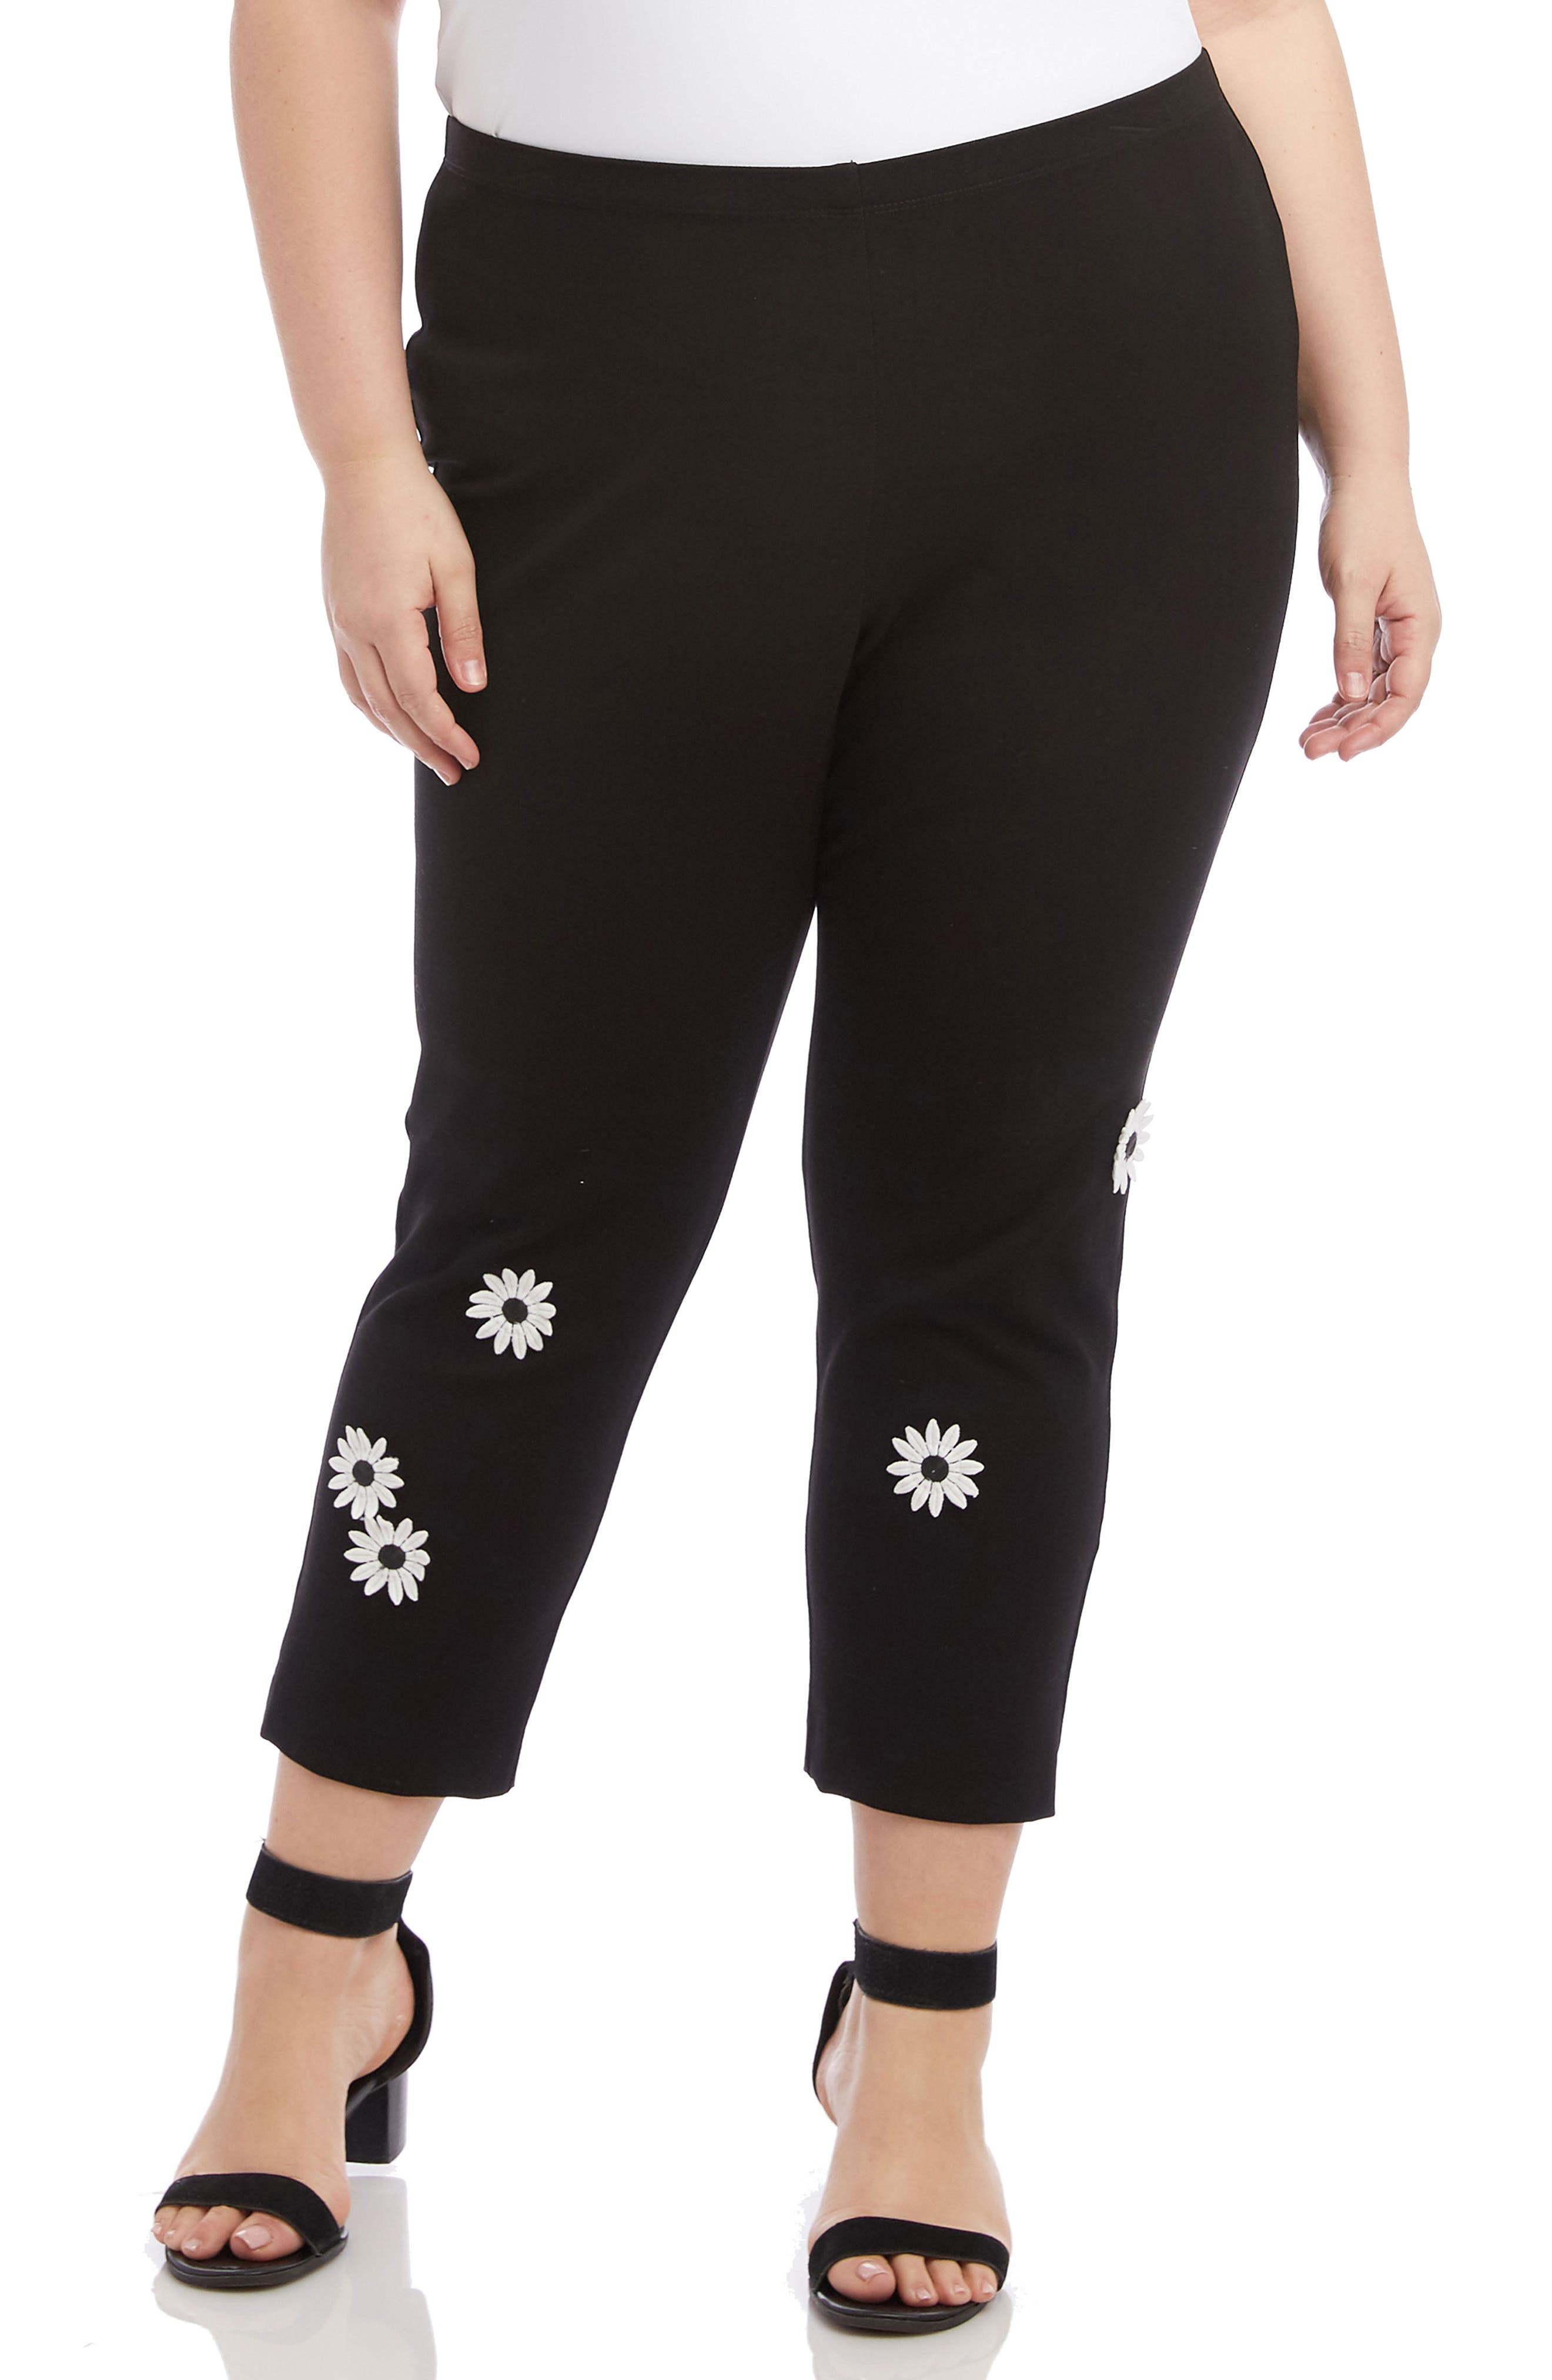 KAREN KANE, Piper Daisy Ankle Pants, Main thumbnail 1, color, BLACK